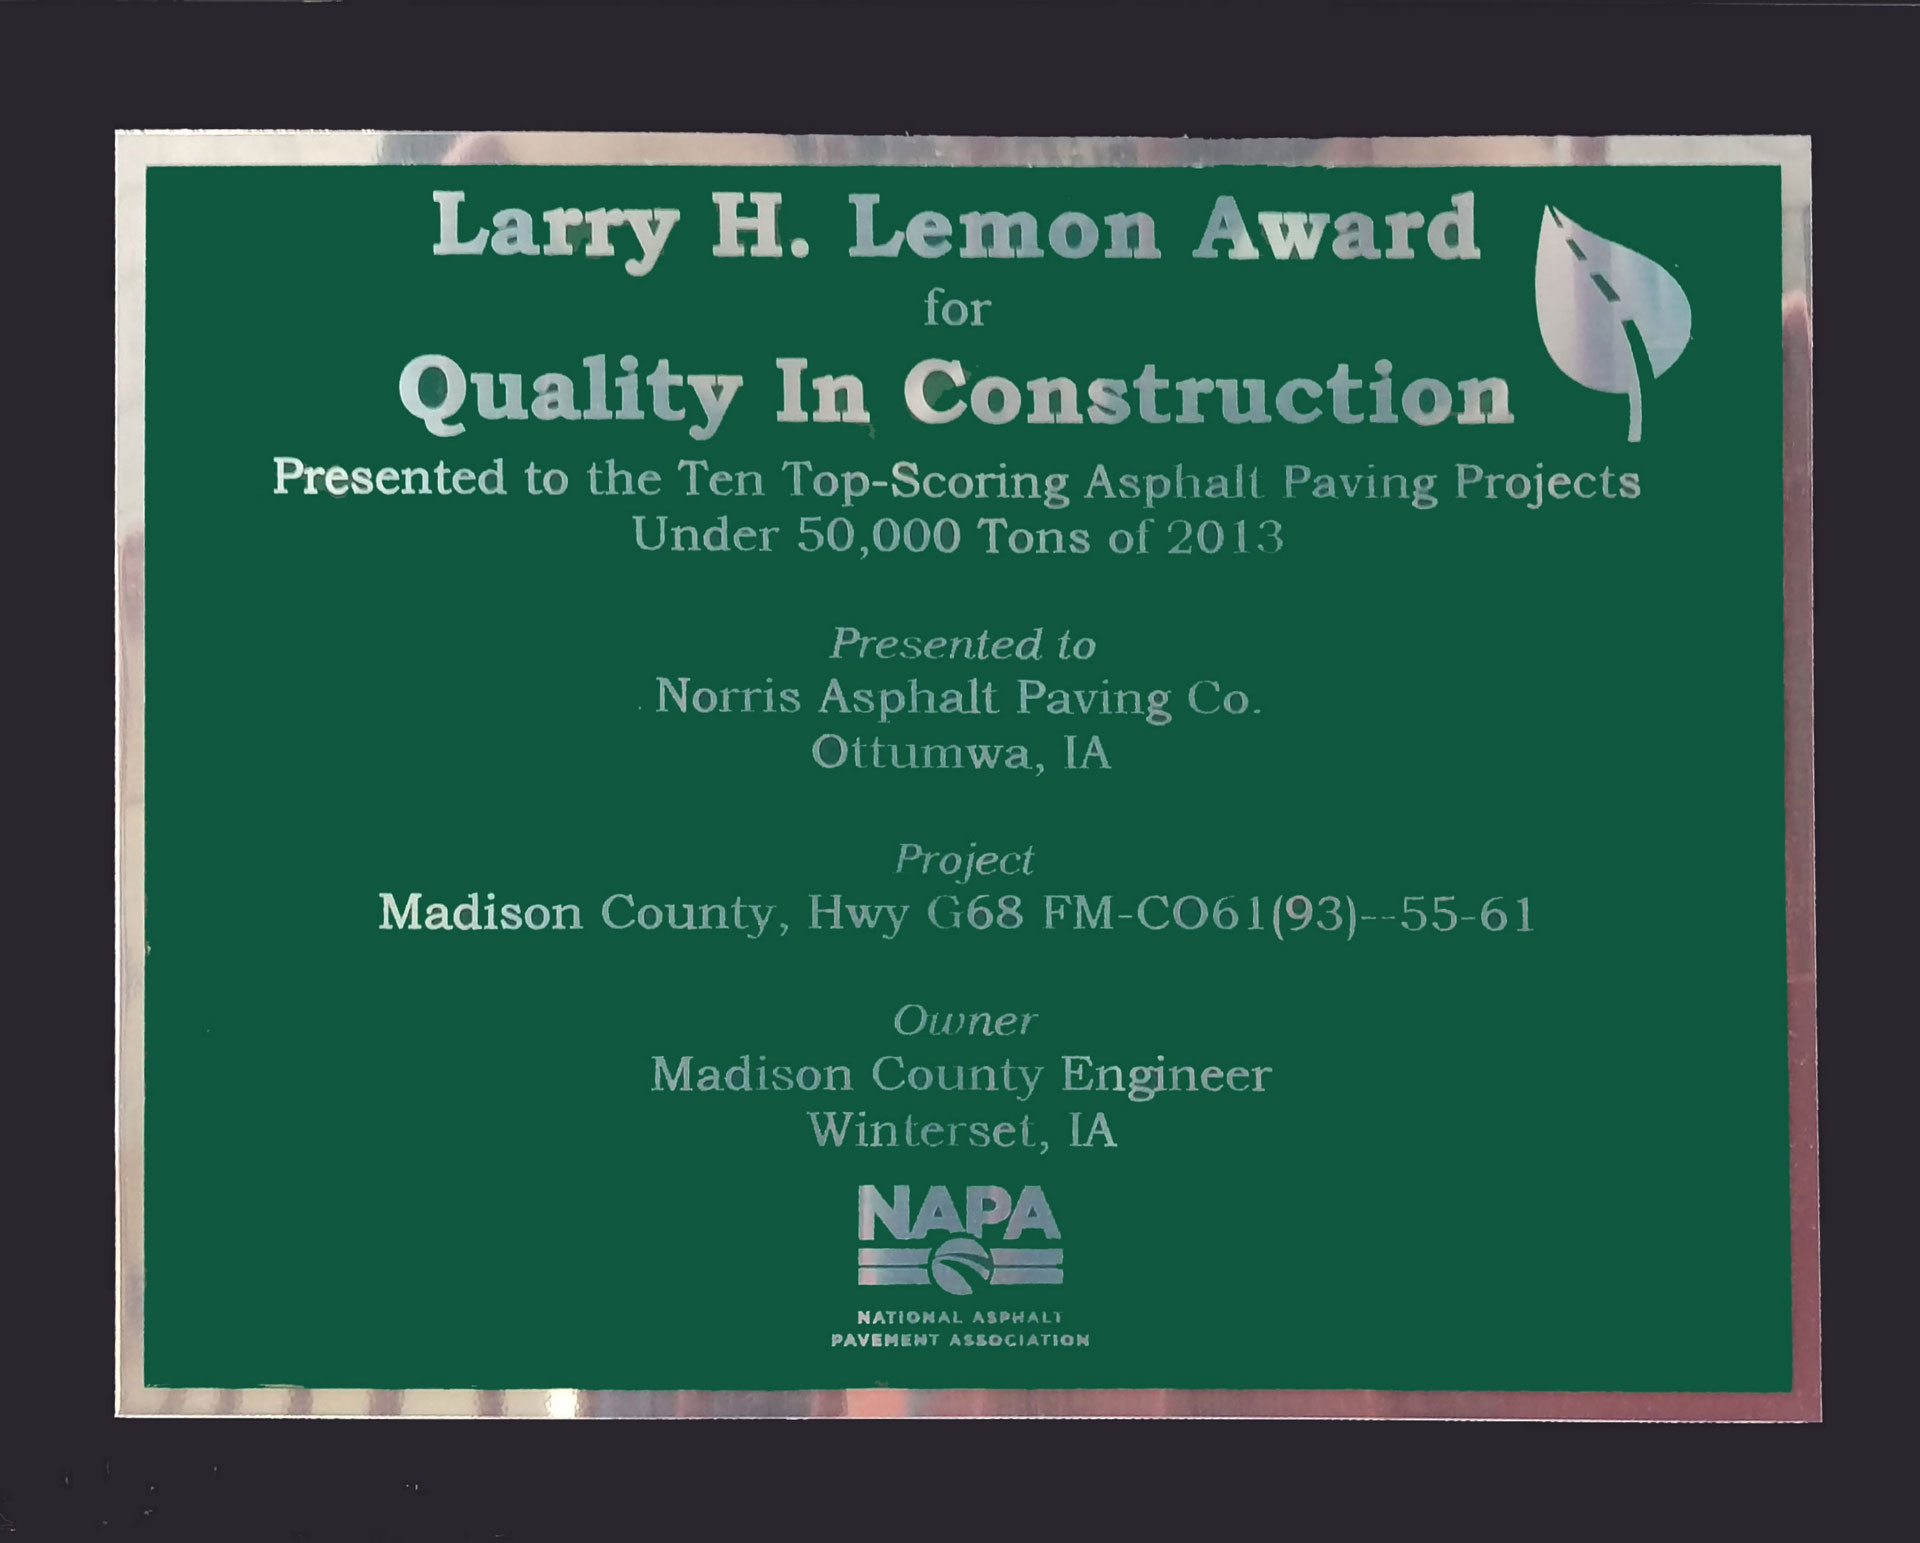 Larry H. Lemon Award